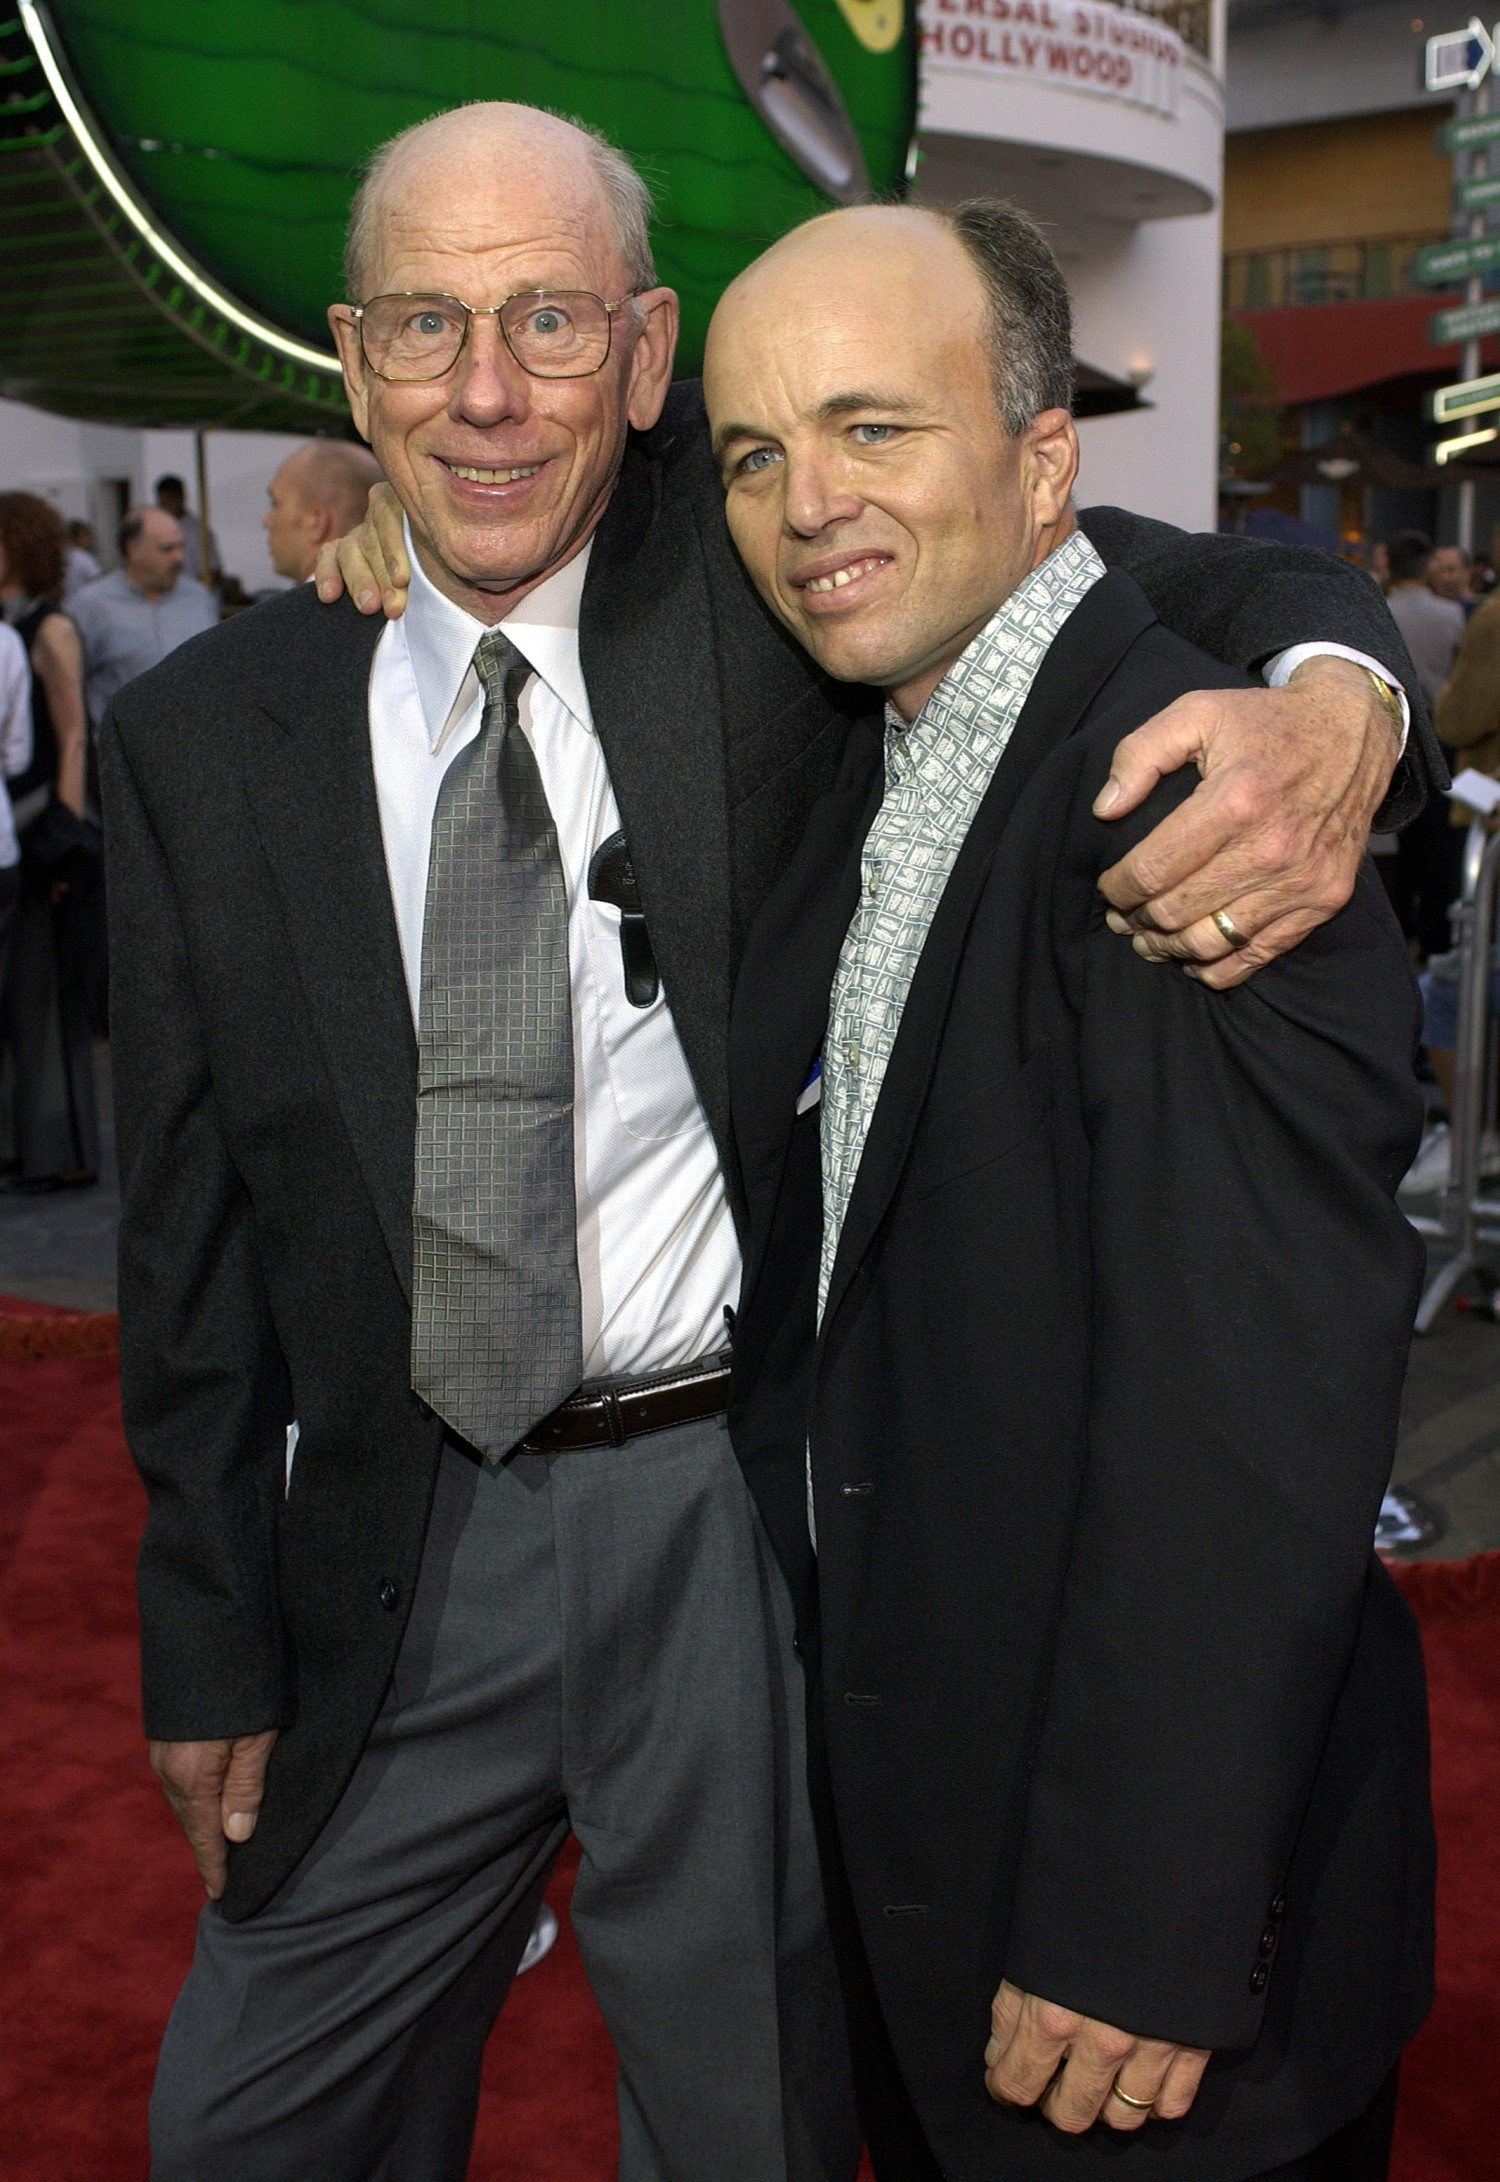 Clint Howard and Father Rance At Premiere of Apollo 13 - The IMAX Experience